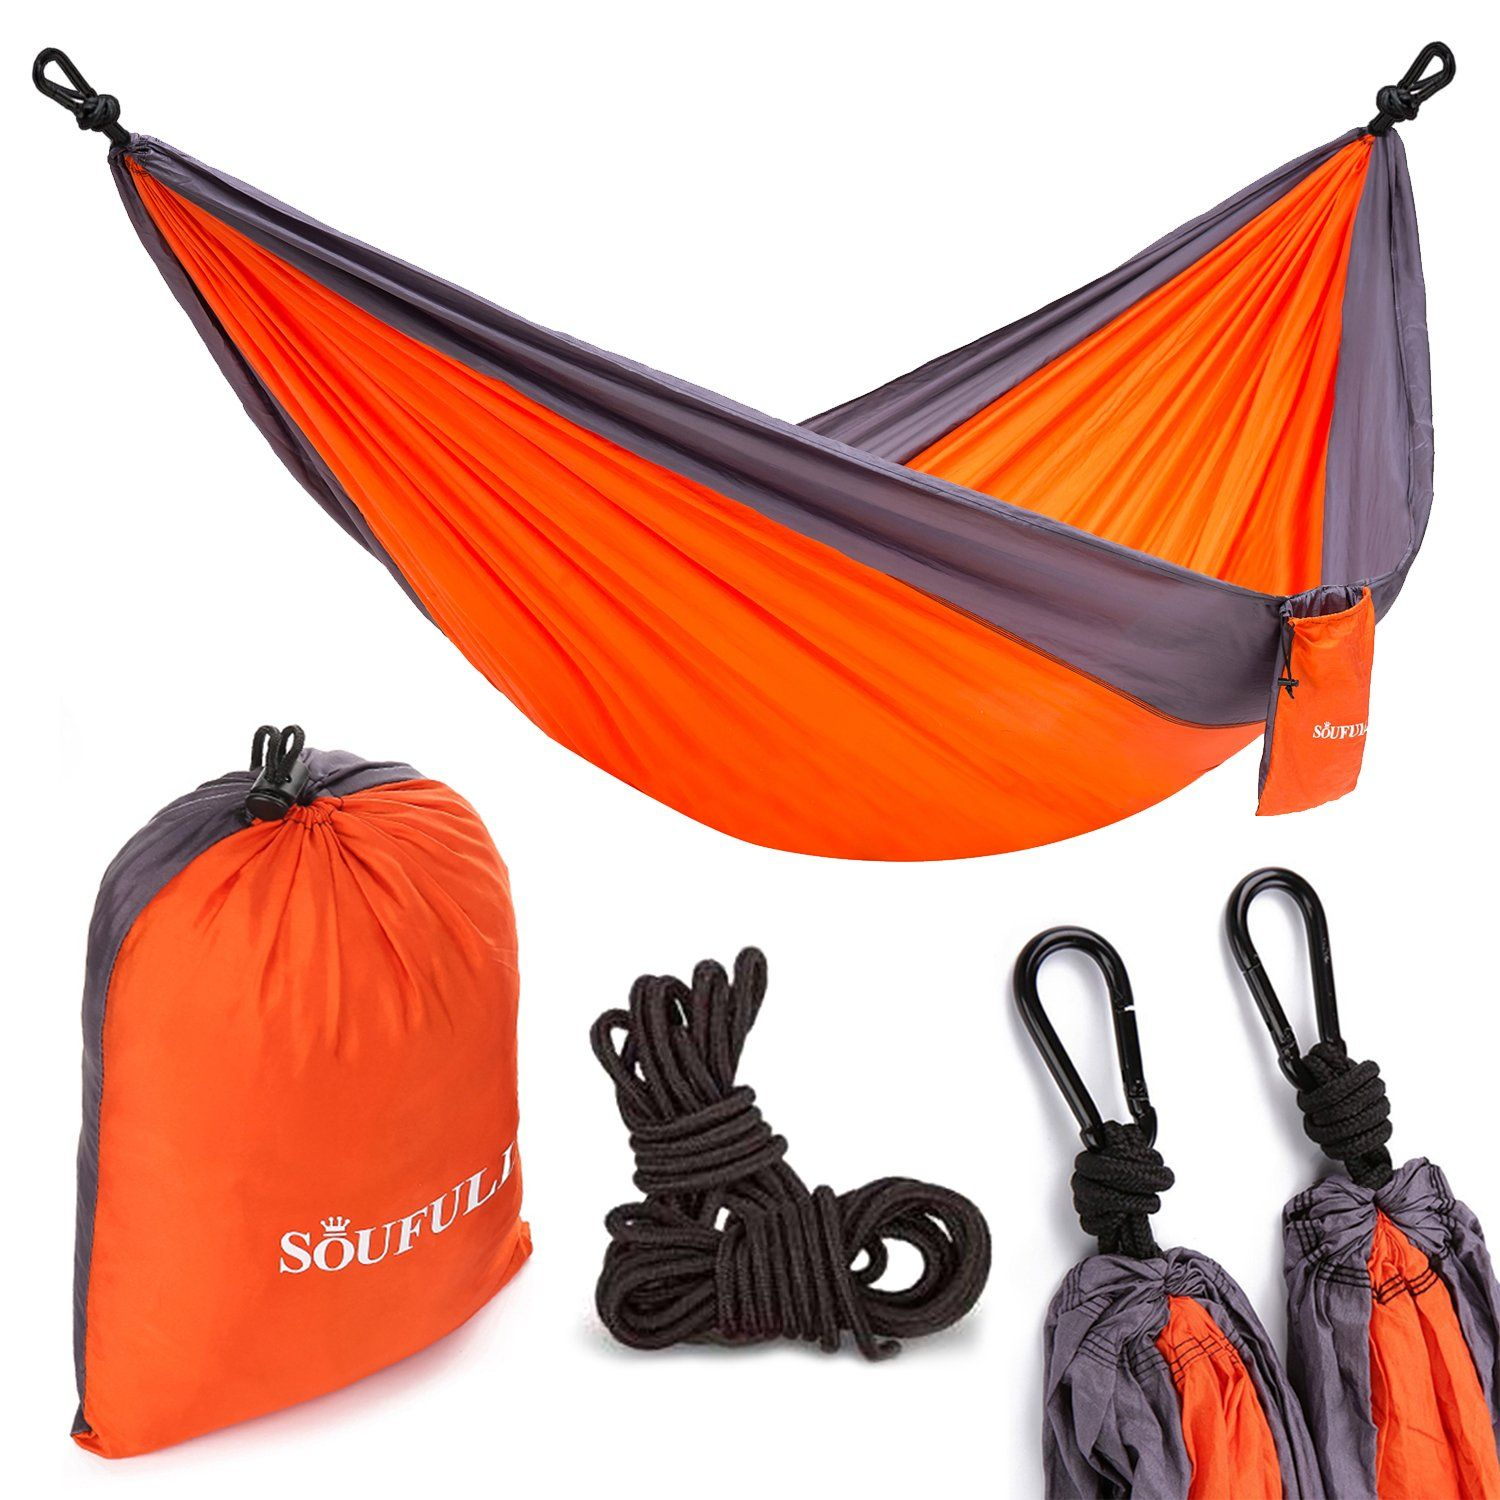 camping lbs best lightweight arbor fabric durable holds hammock that outfitters and by creek extremely double pin nylon